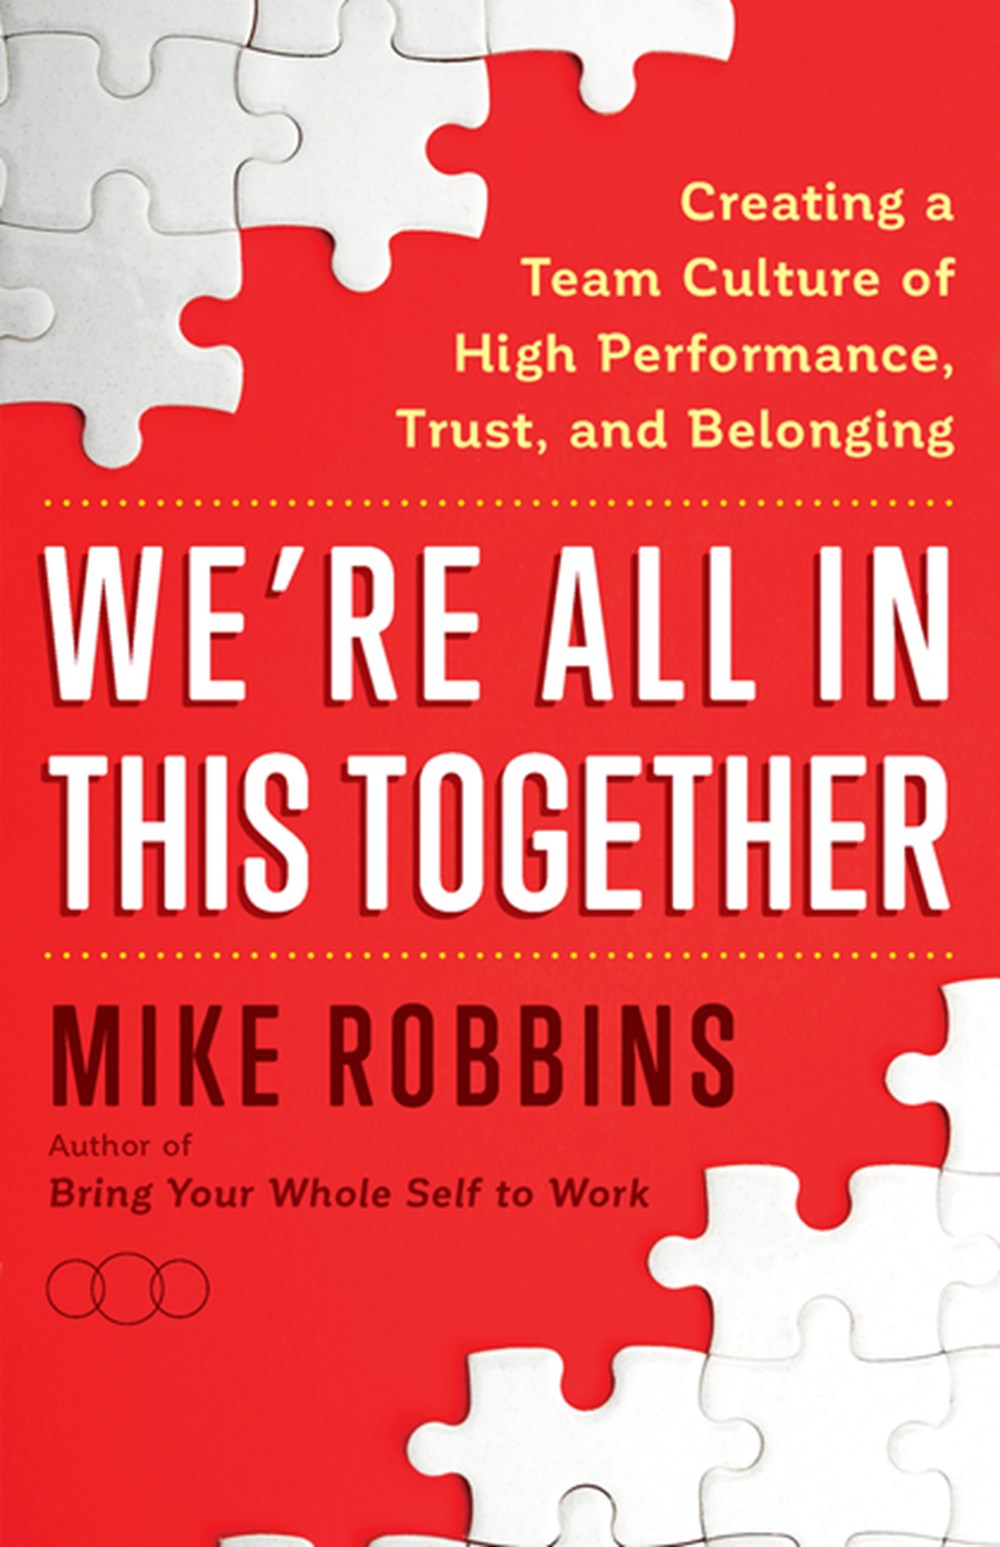 We're All in This Together Creating a Team Culture of High Performance, Trust, and Belonging